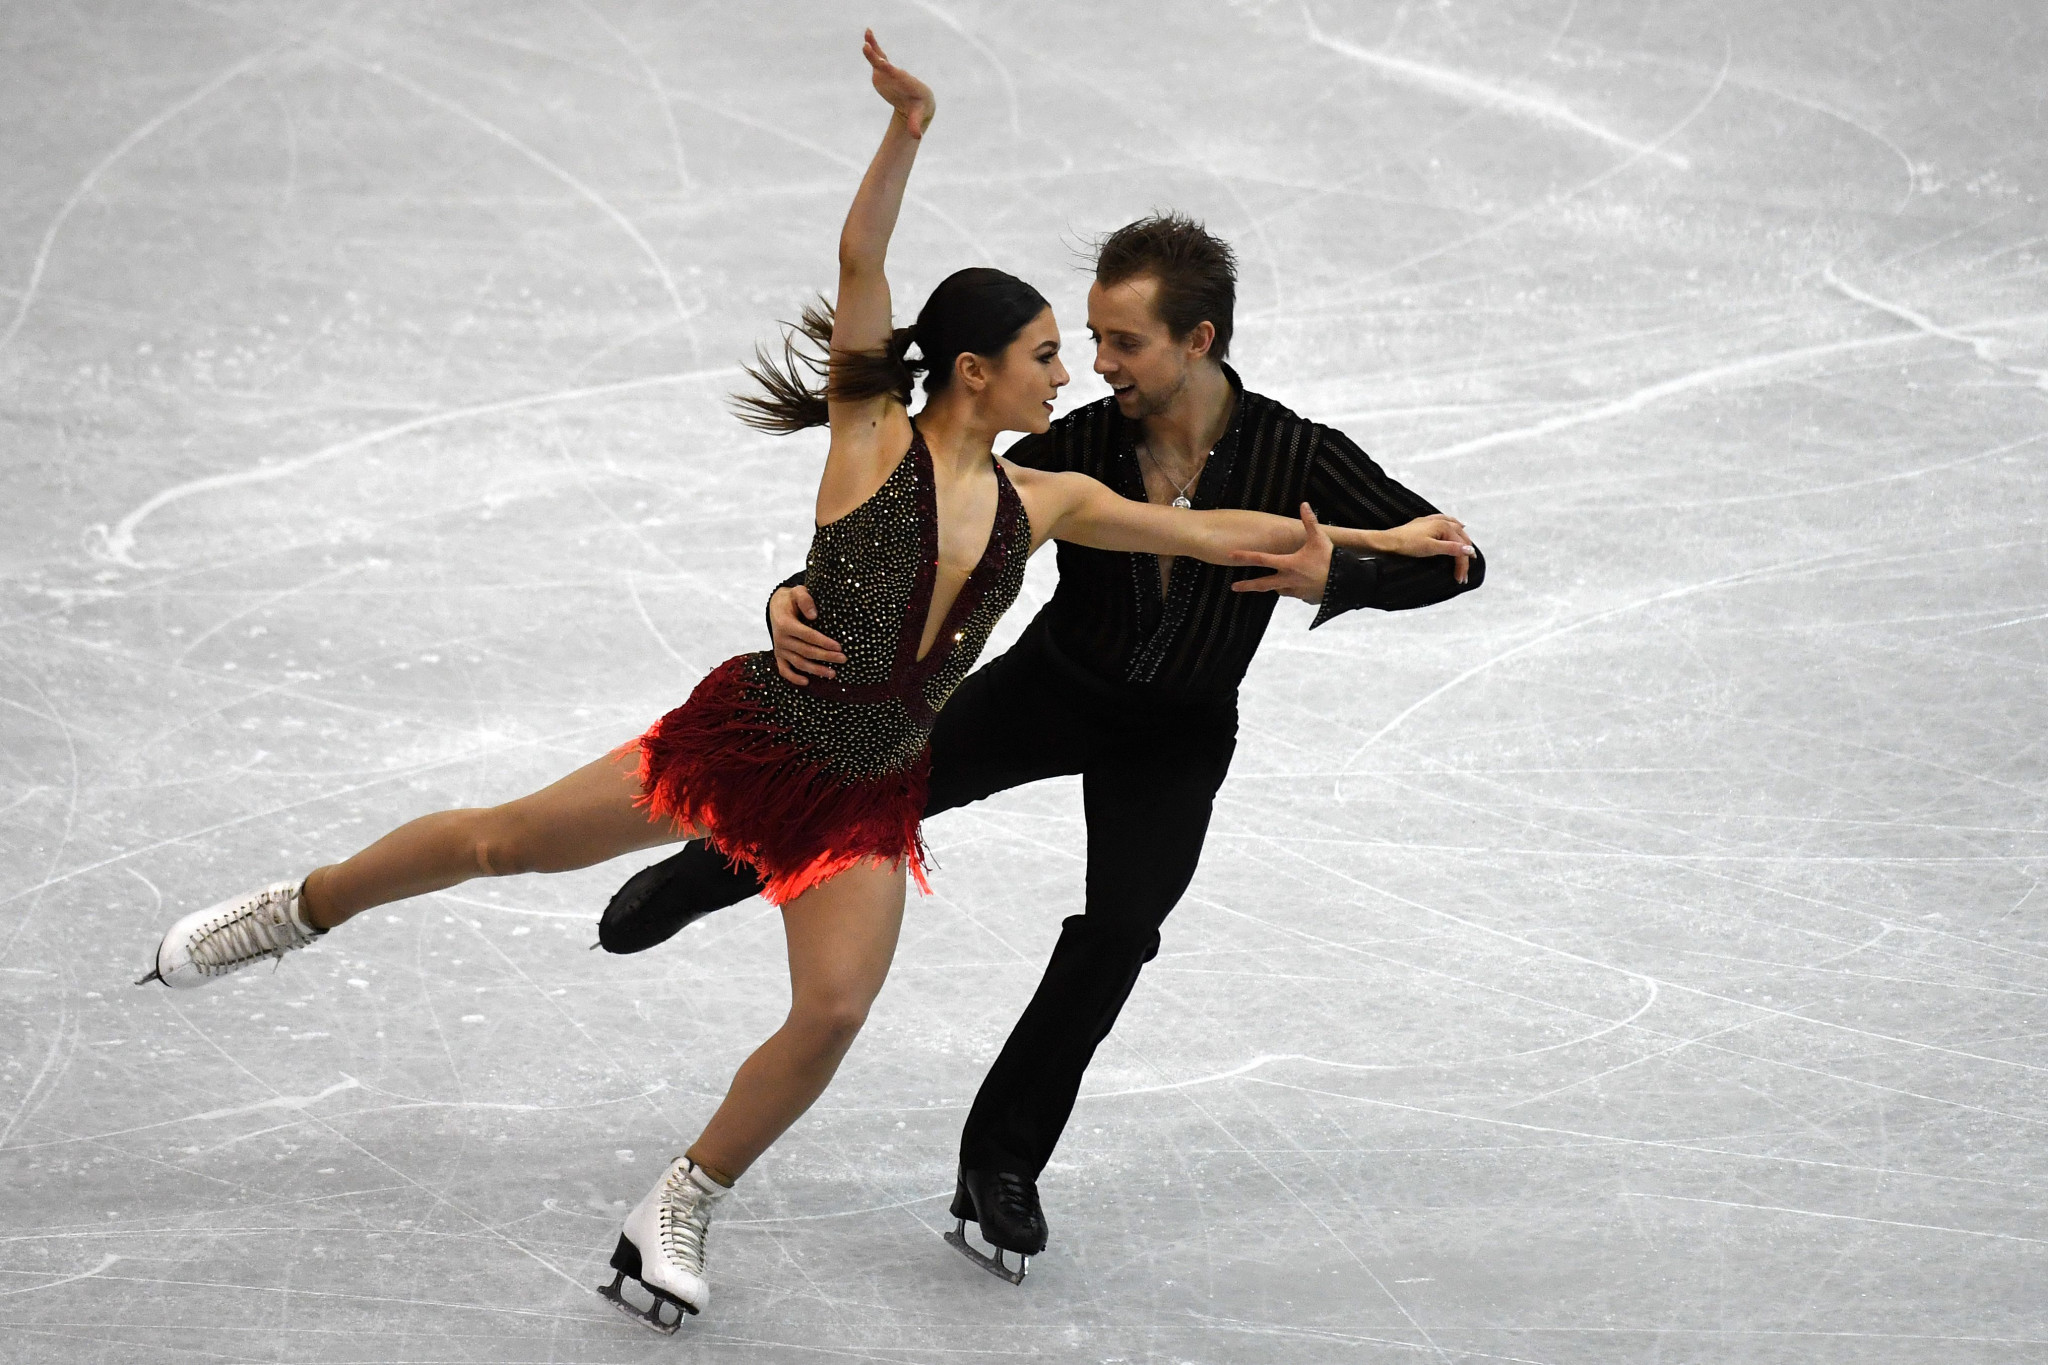 Kaitlin Hawayek and Jean-Luc Baker won today's short dance event ©Getty Images